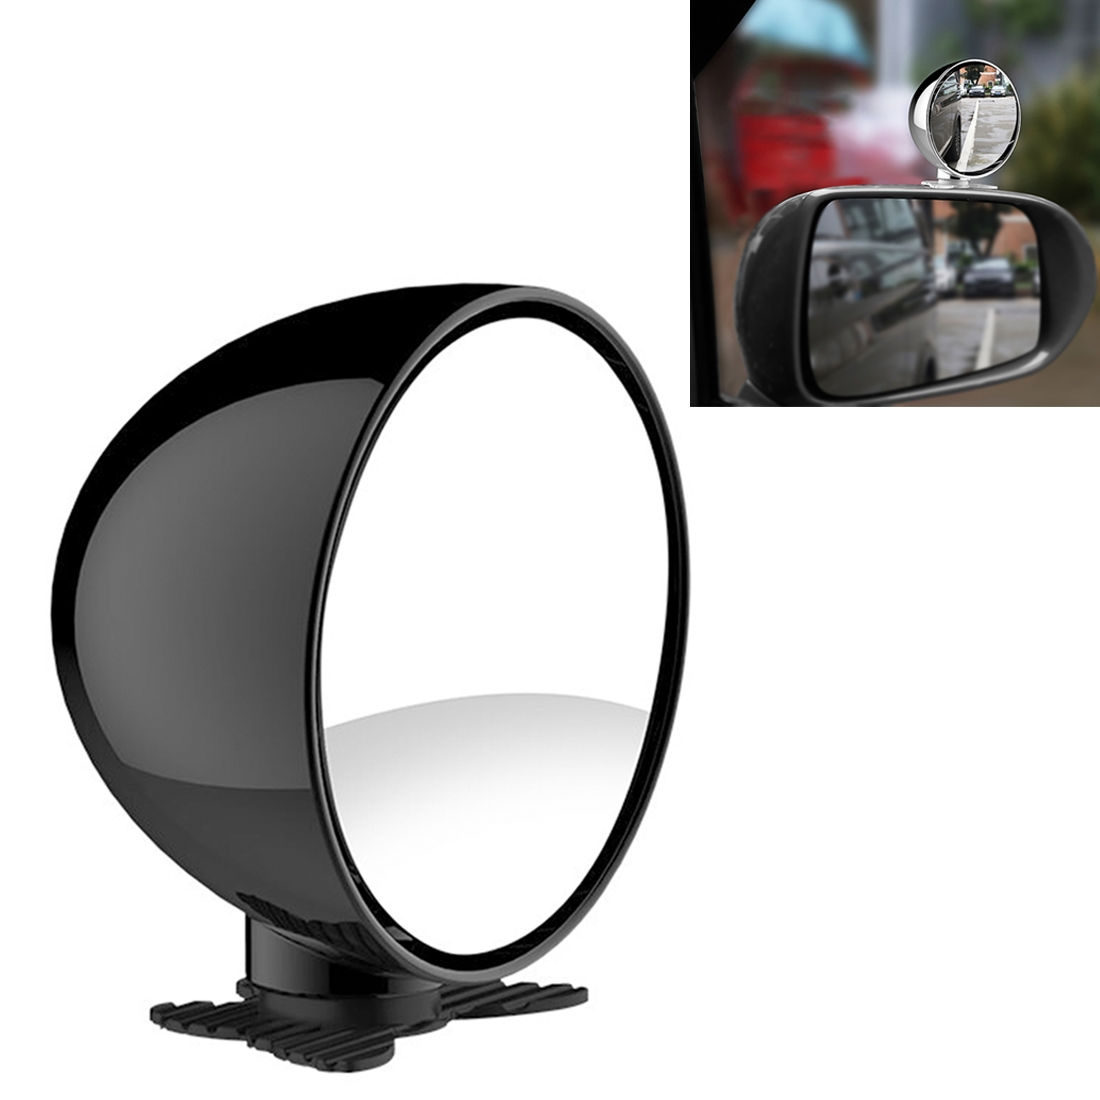 3R-044 Auxiliary Rear View Mirror Car Adjustable Blind Spot Mirror Wide Angle Auxiliary Rear View Side Mirror (Black)